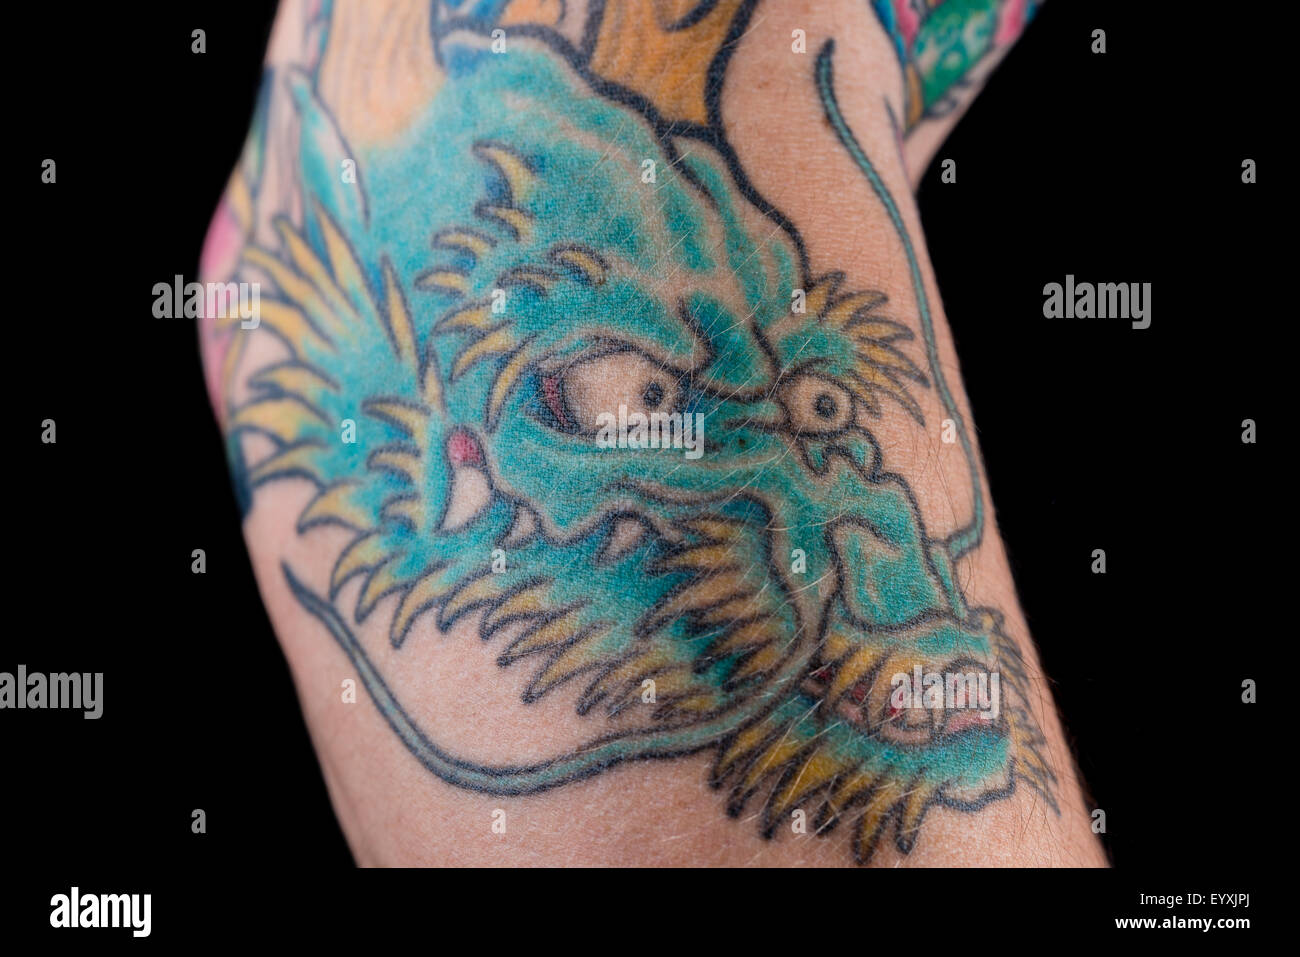 A Detailed Shot Of A Blue Green Dragon Tattoo In Japanese Style On